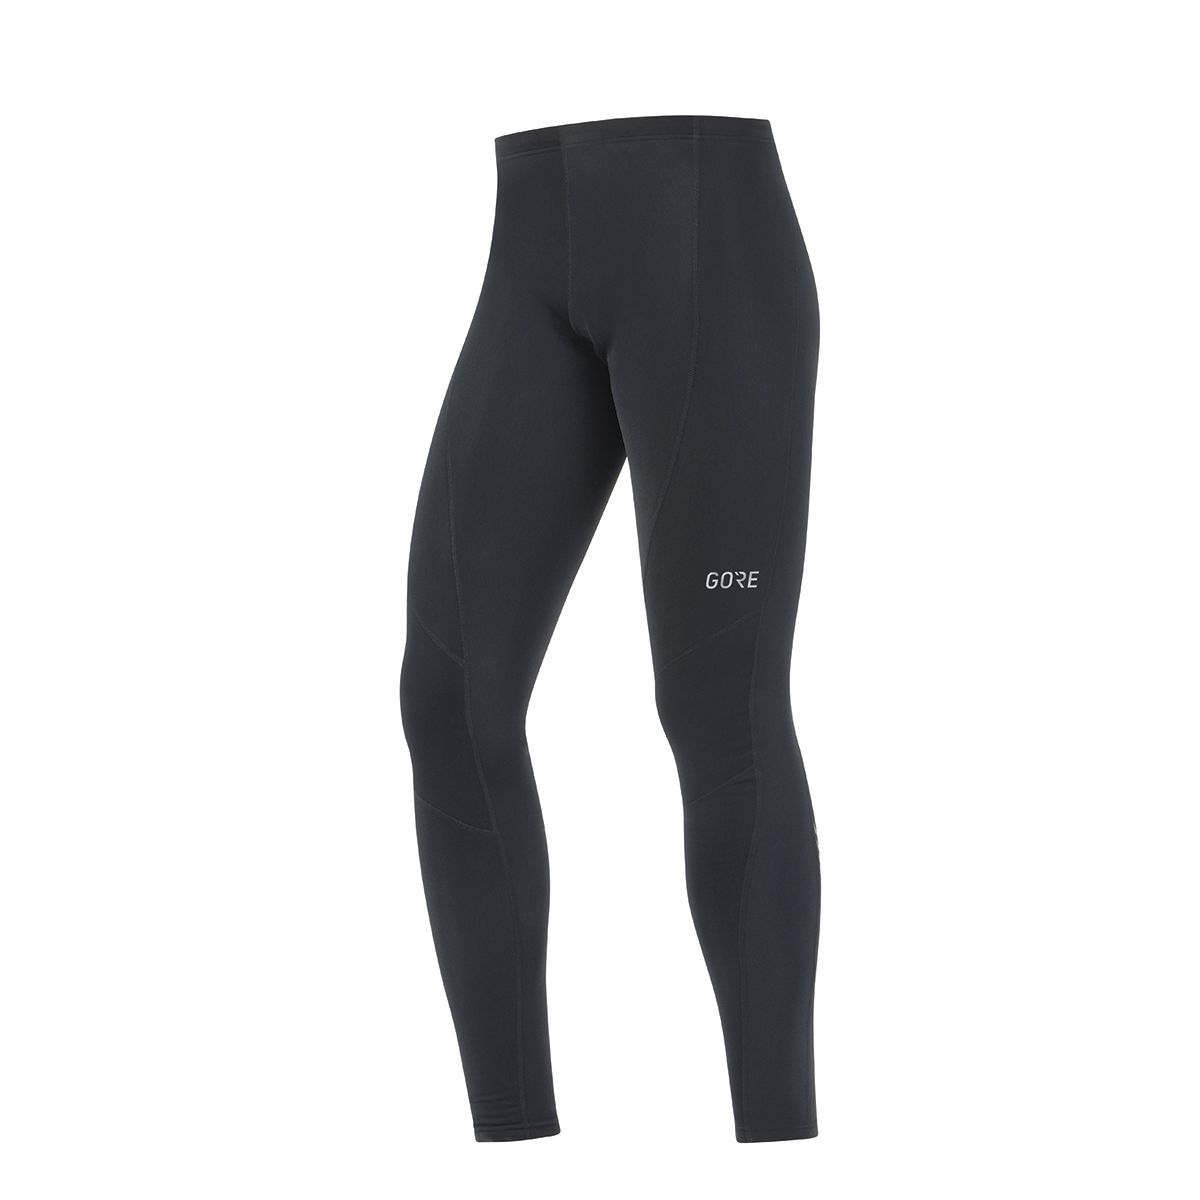 C3 THERMO TIGHTS Herren Thermo Radhose lang